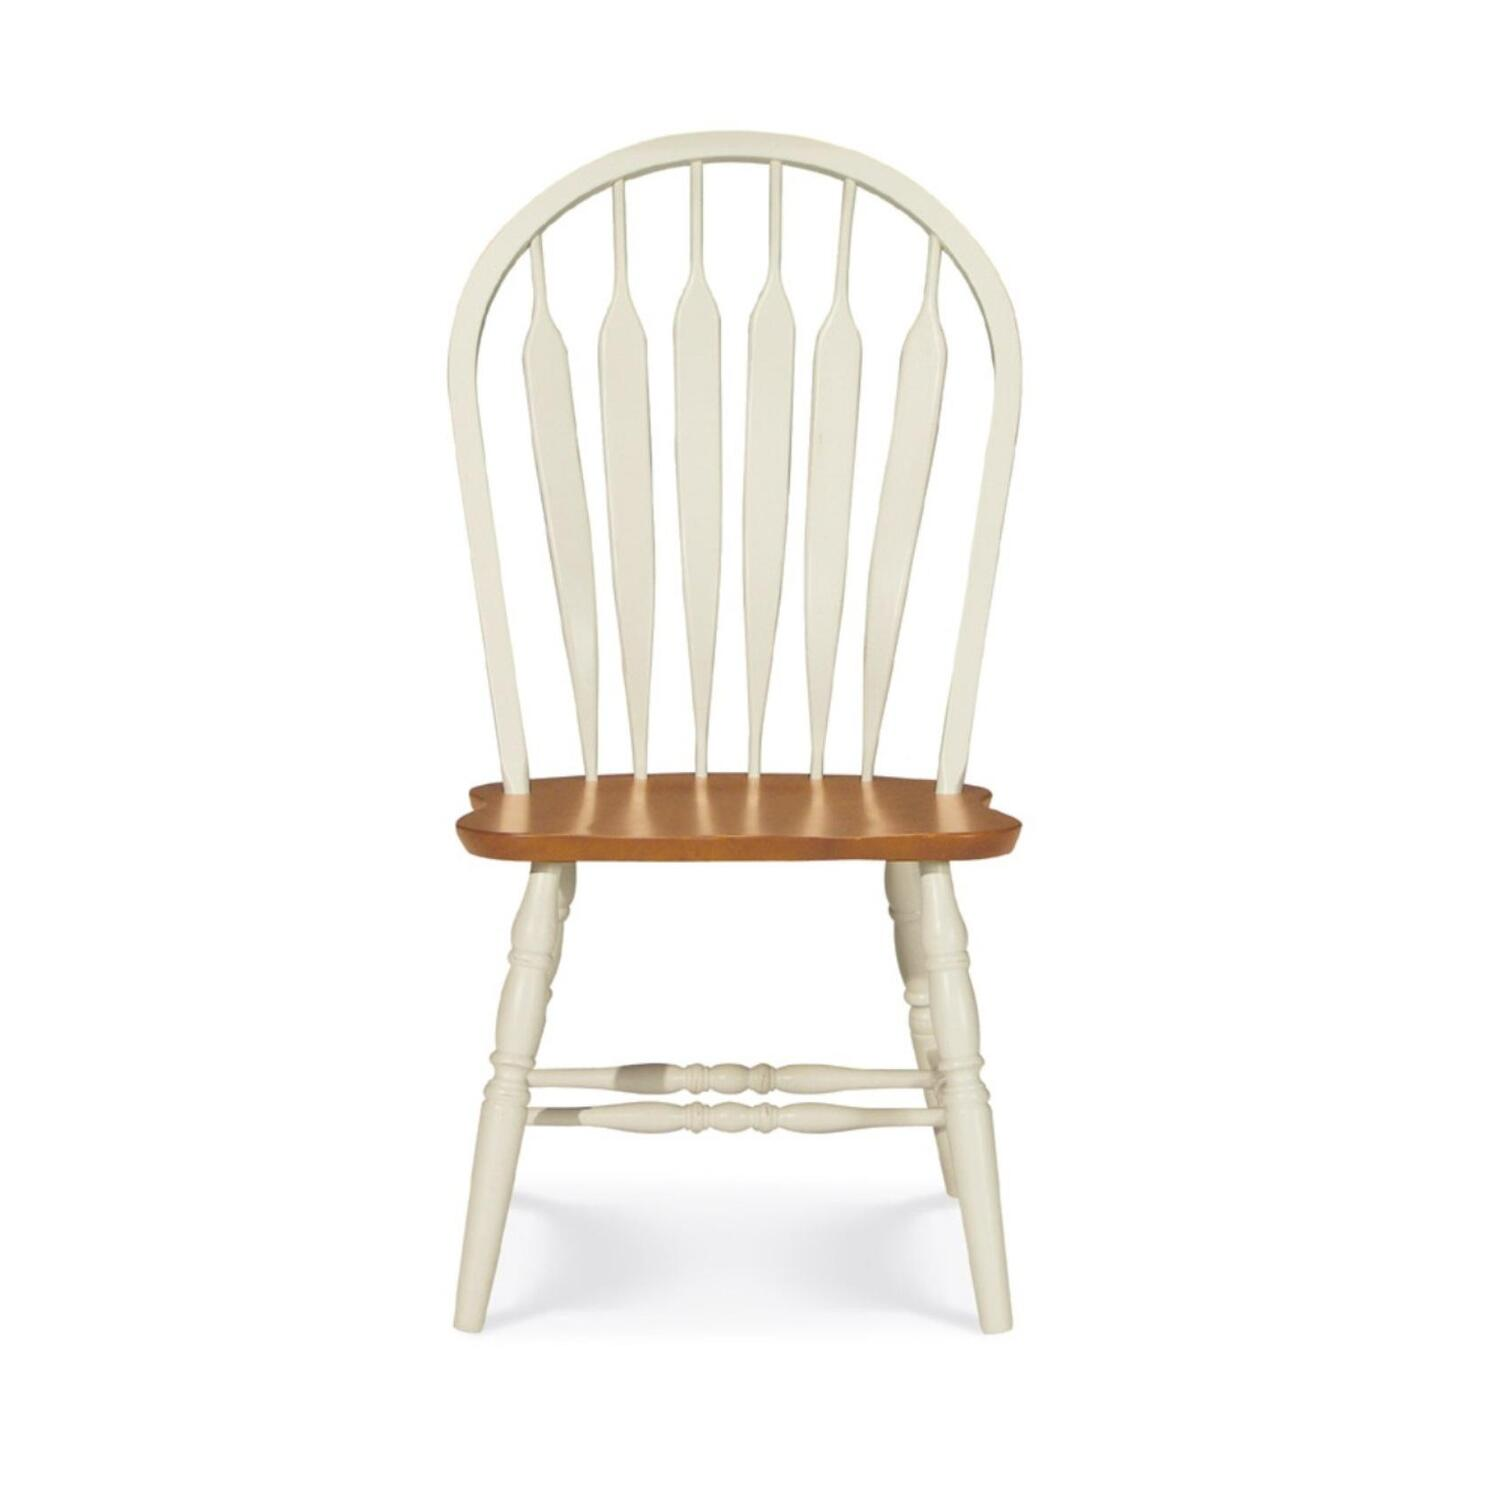 ... Concepts Tall Arrowback Windsor Chair by OJ Commerce $238.04